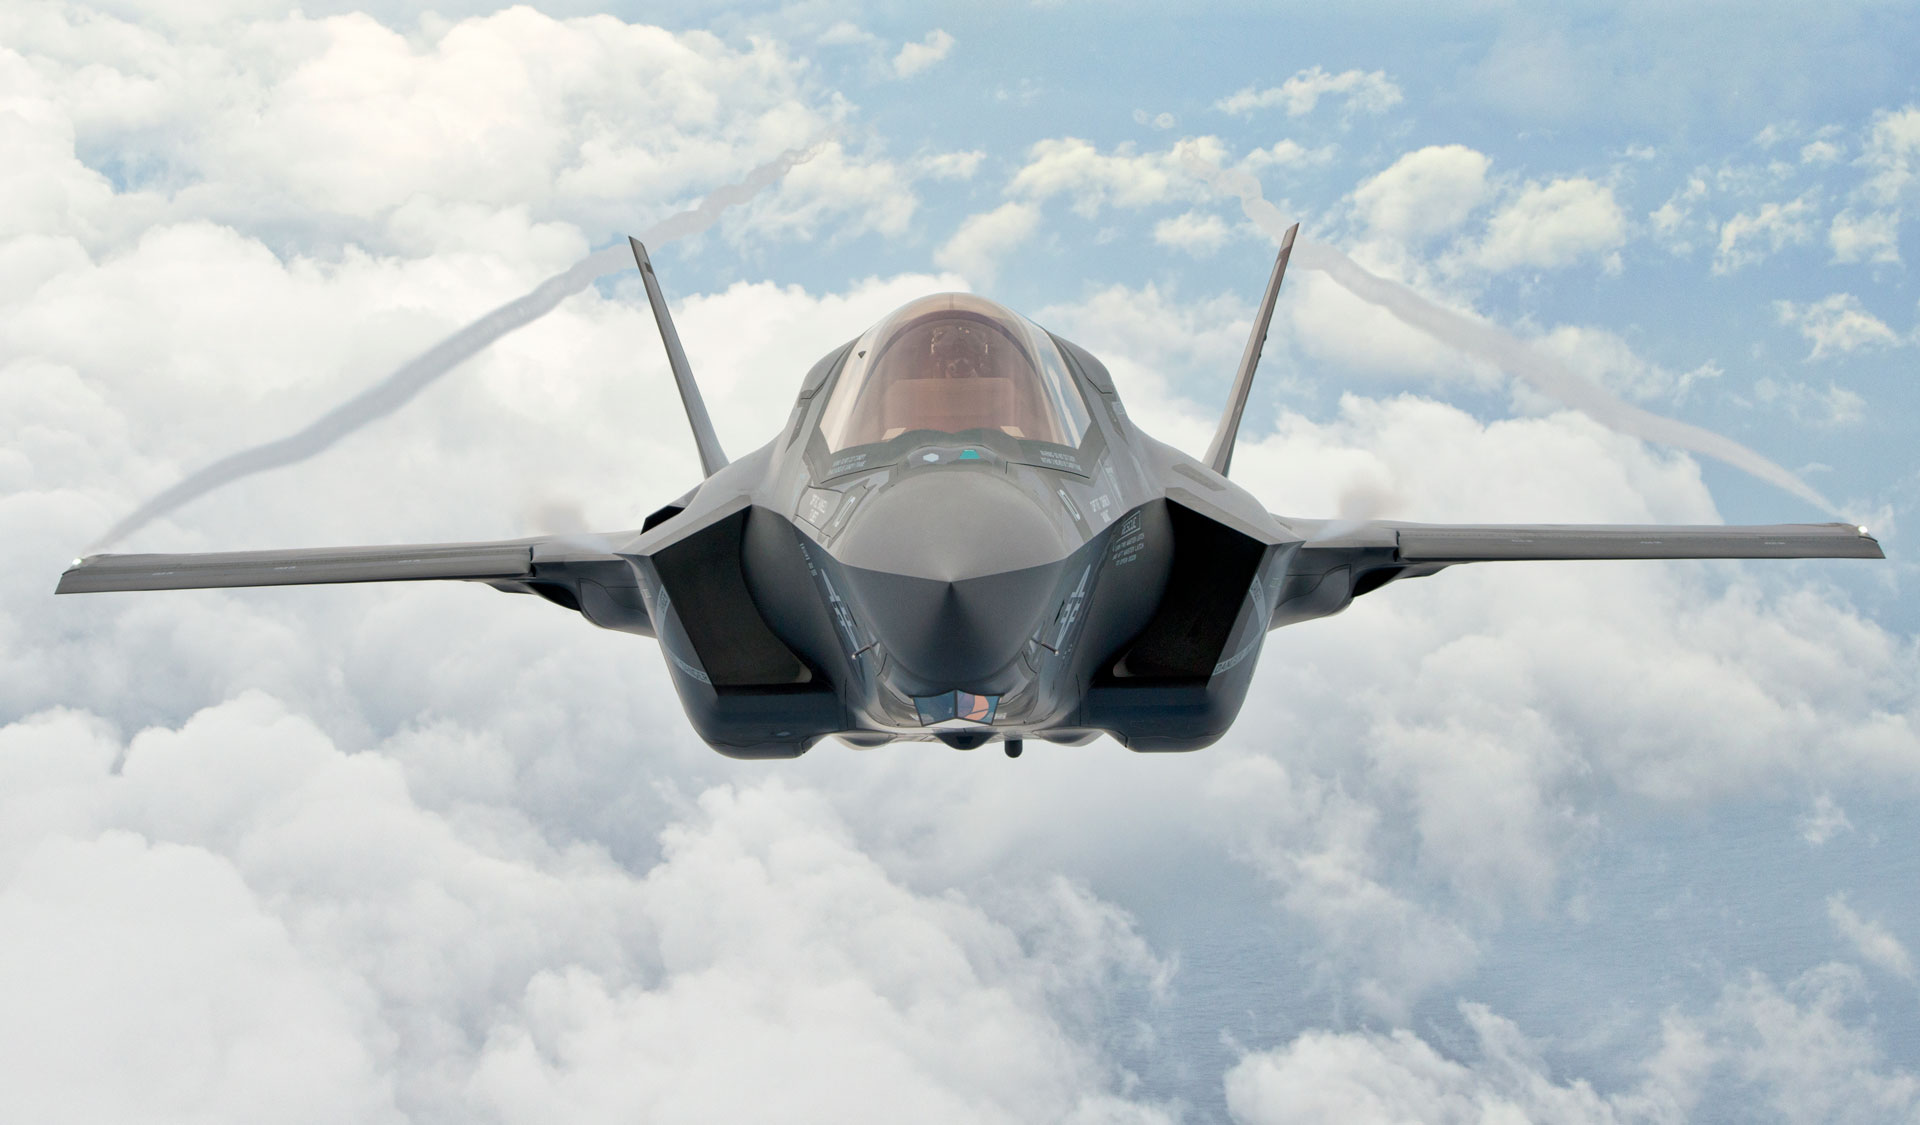 First F-35 fighter jet from the U.S. to Turkey on June 21